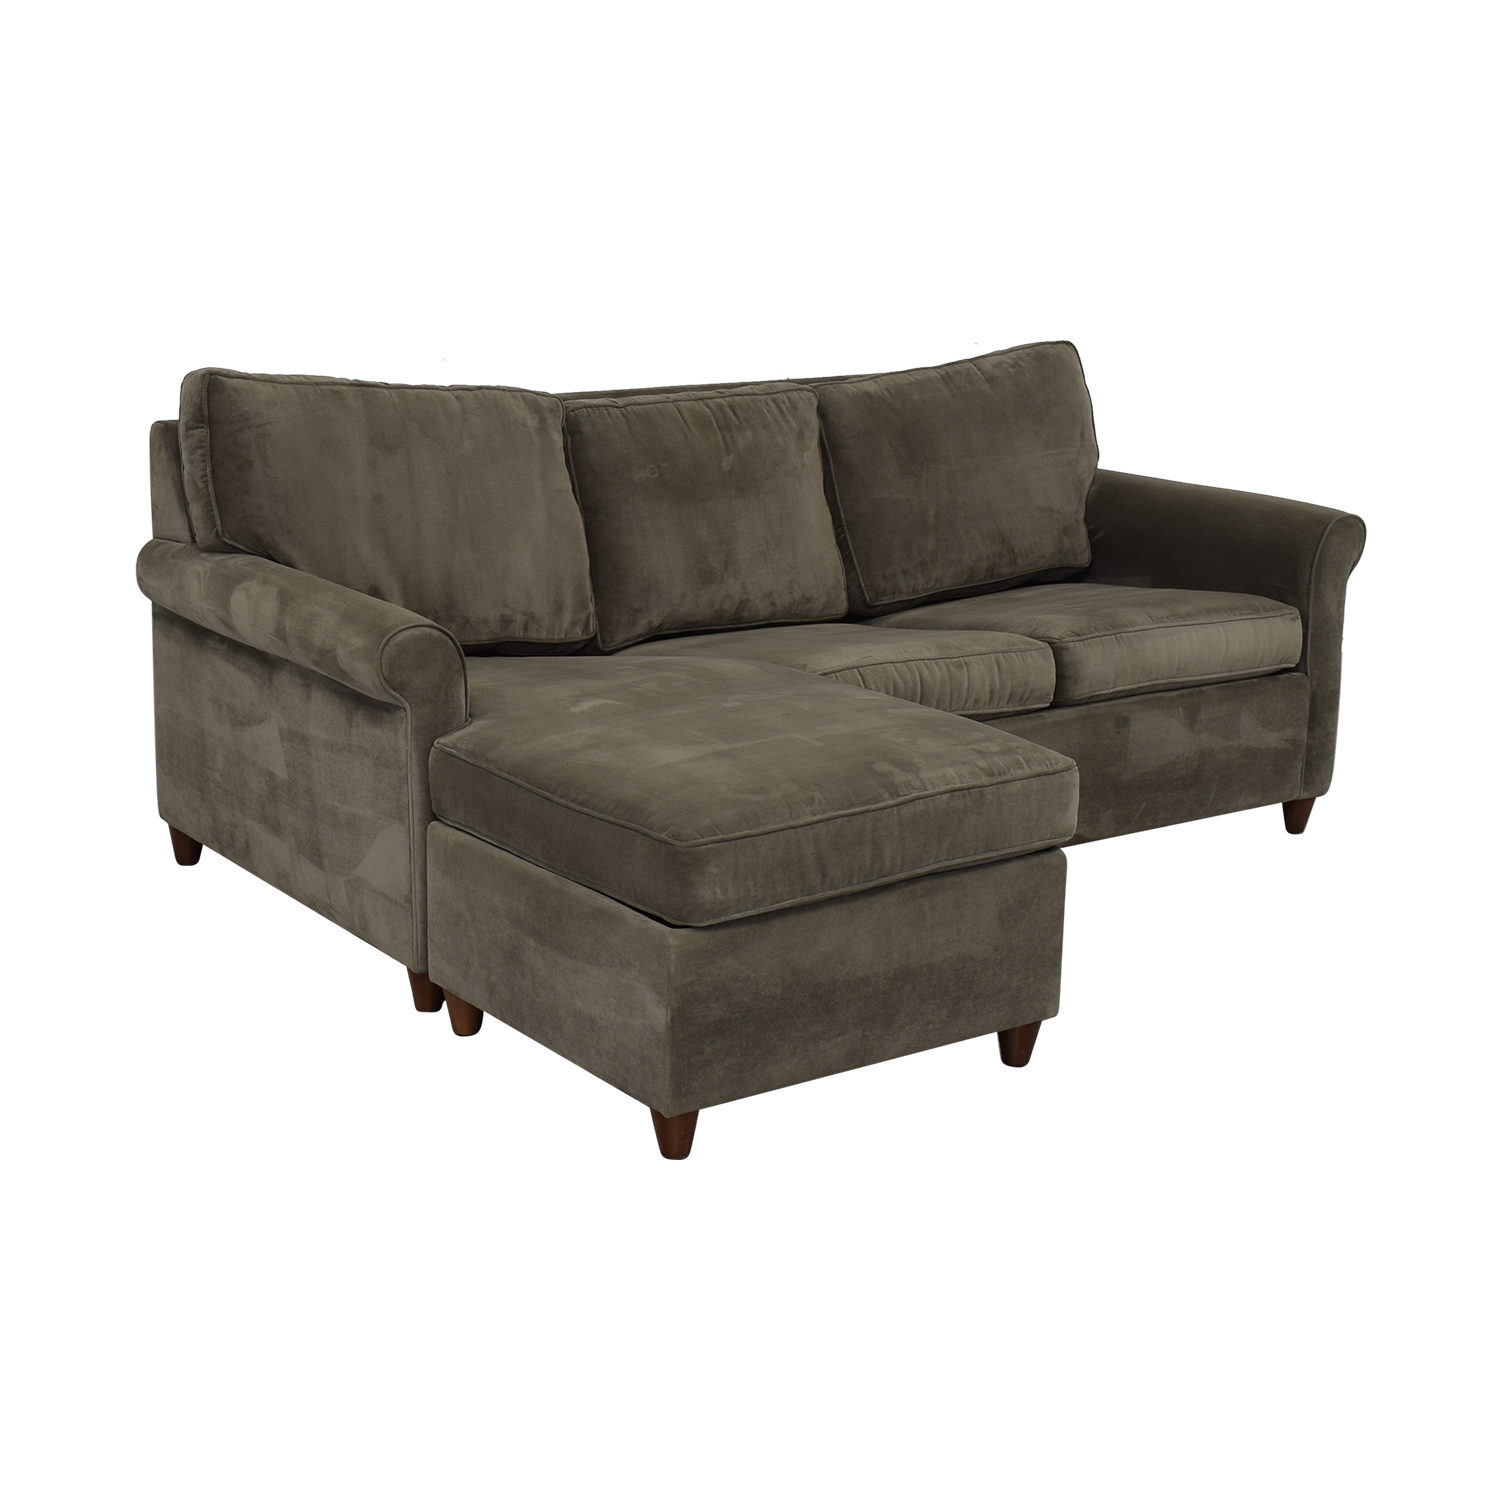 Fabulous 77 Off Macys Macys Lidia Chaise Sectional Queen Sleeper Sofa Sofas Caraccident5 Cool Chair Designs And Ideas Caraccident5Info